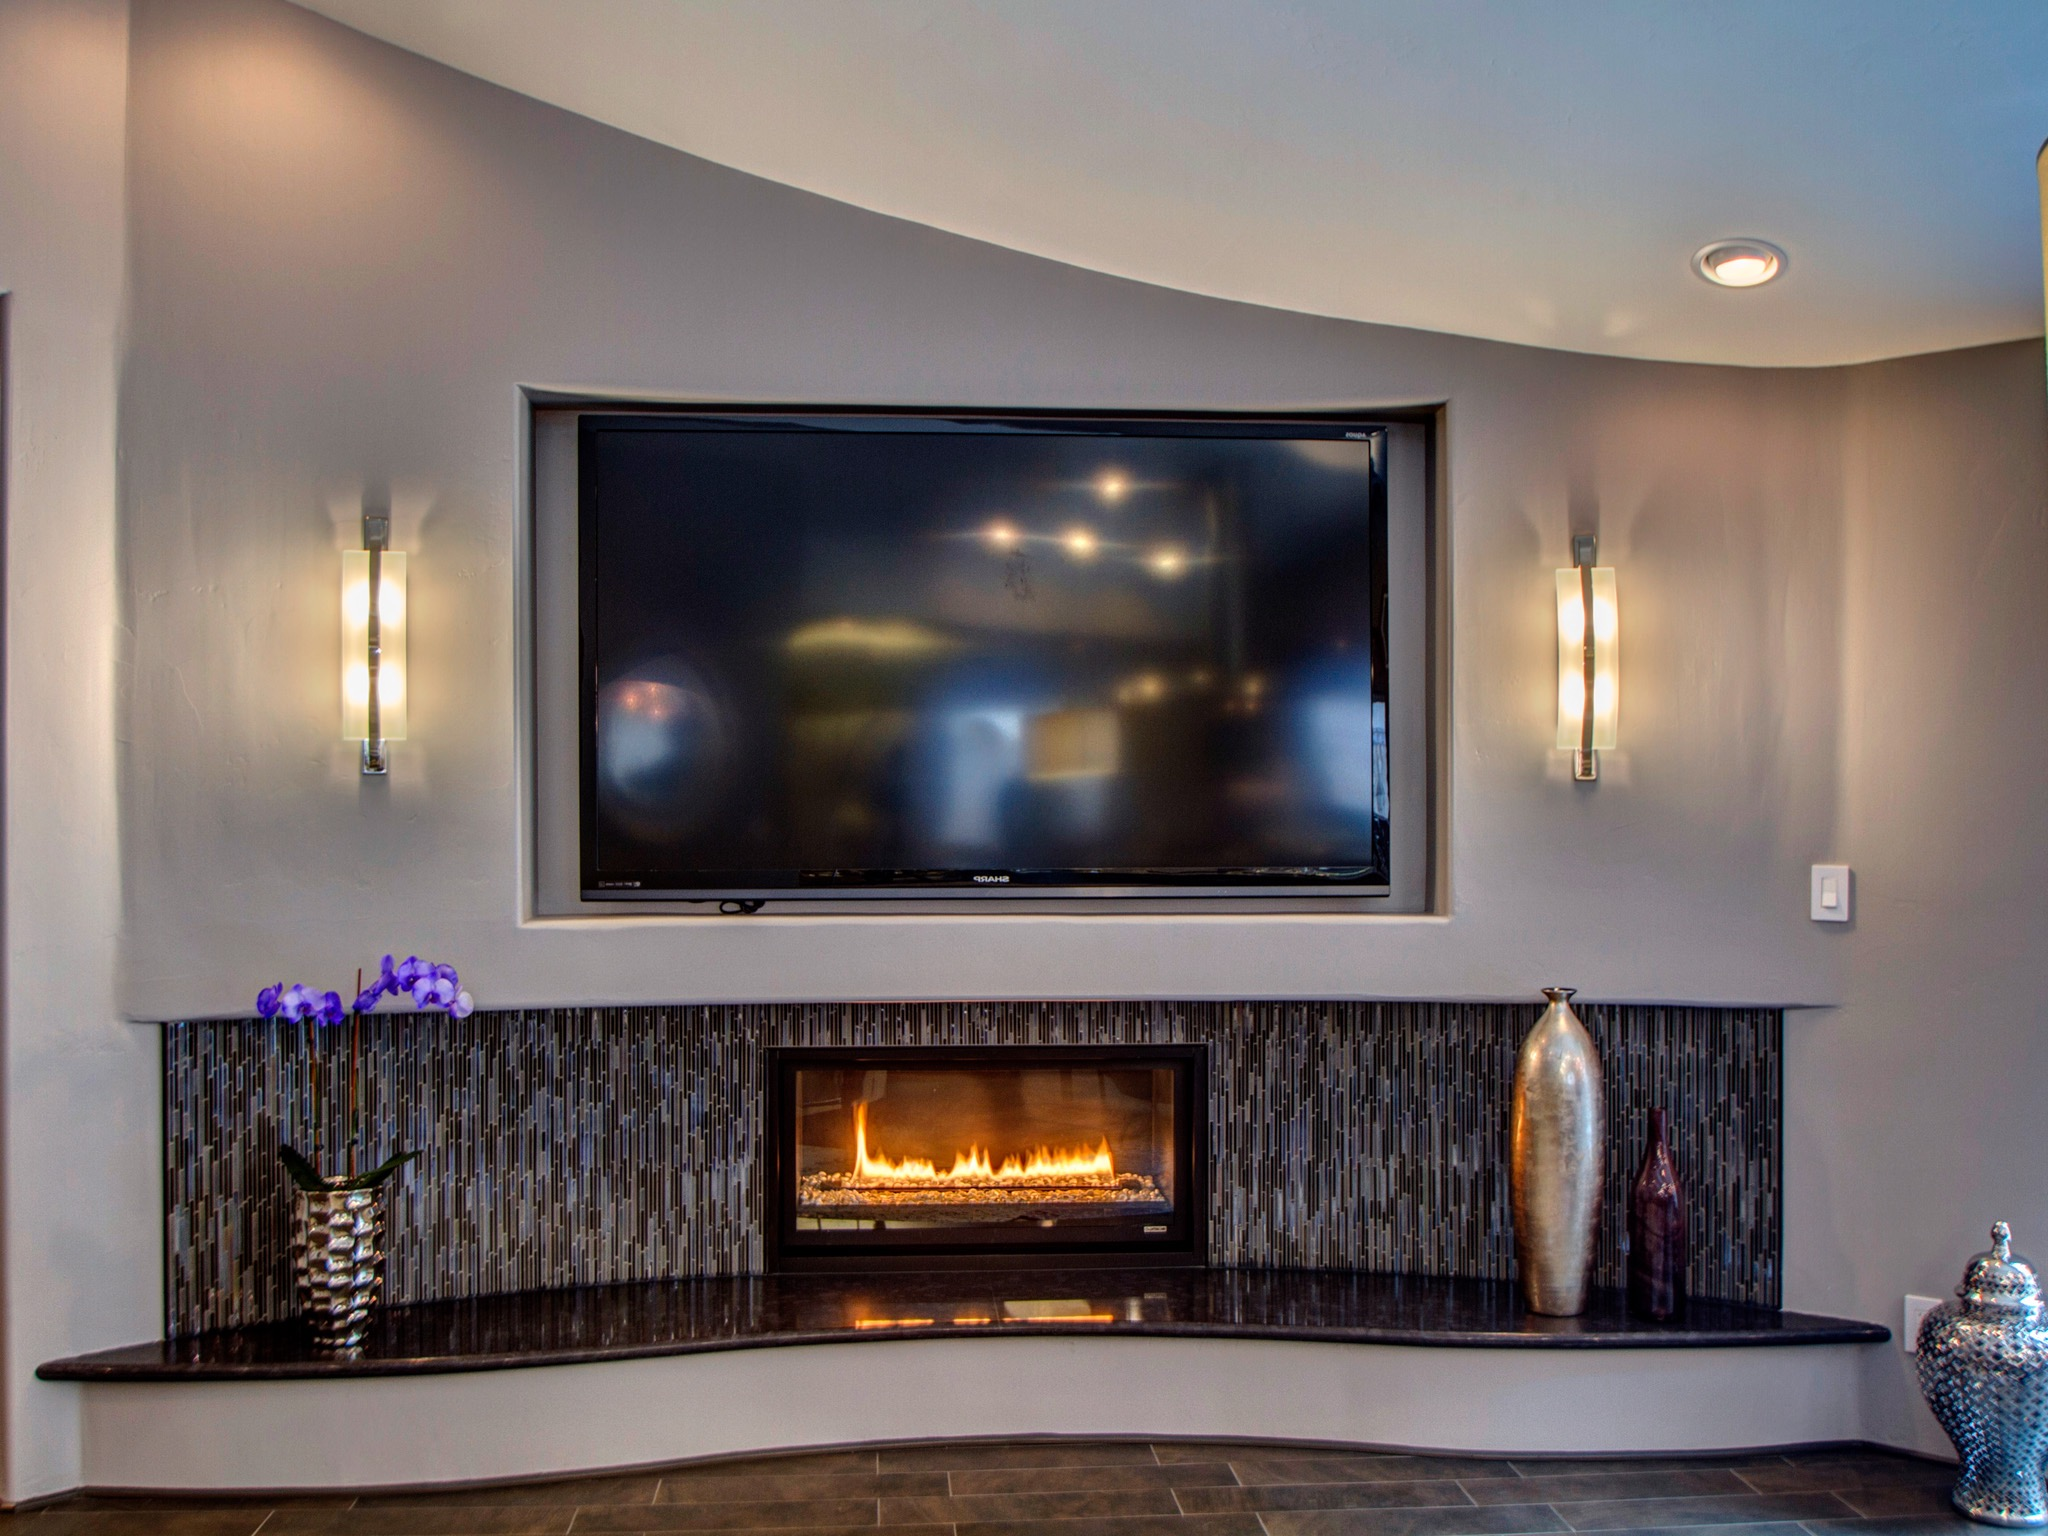 Living Room With Art Deco Inspired Gas Fireplace (View 16 of 20)